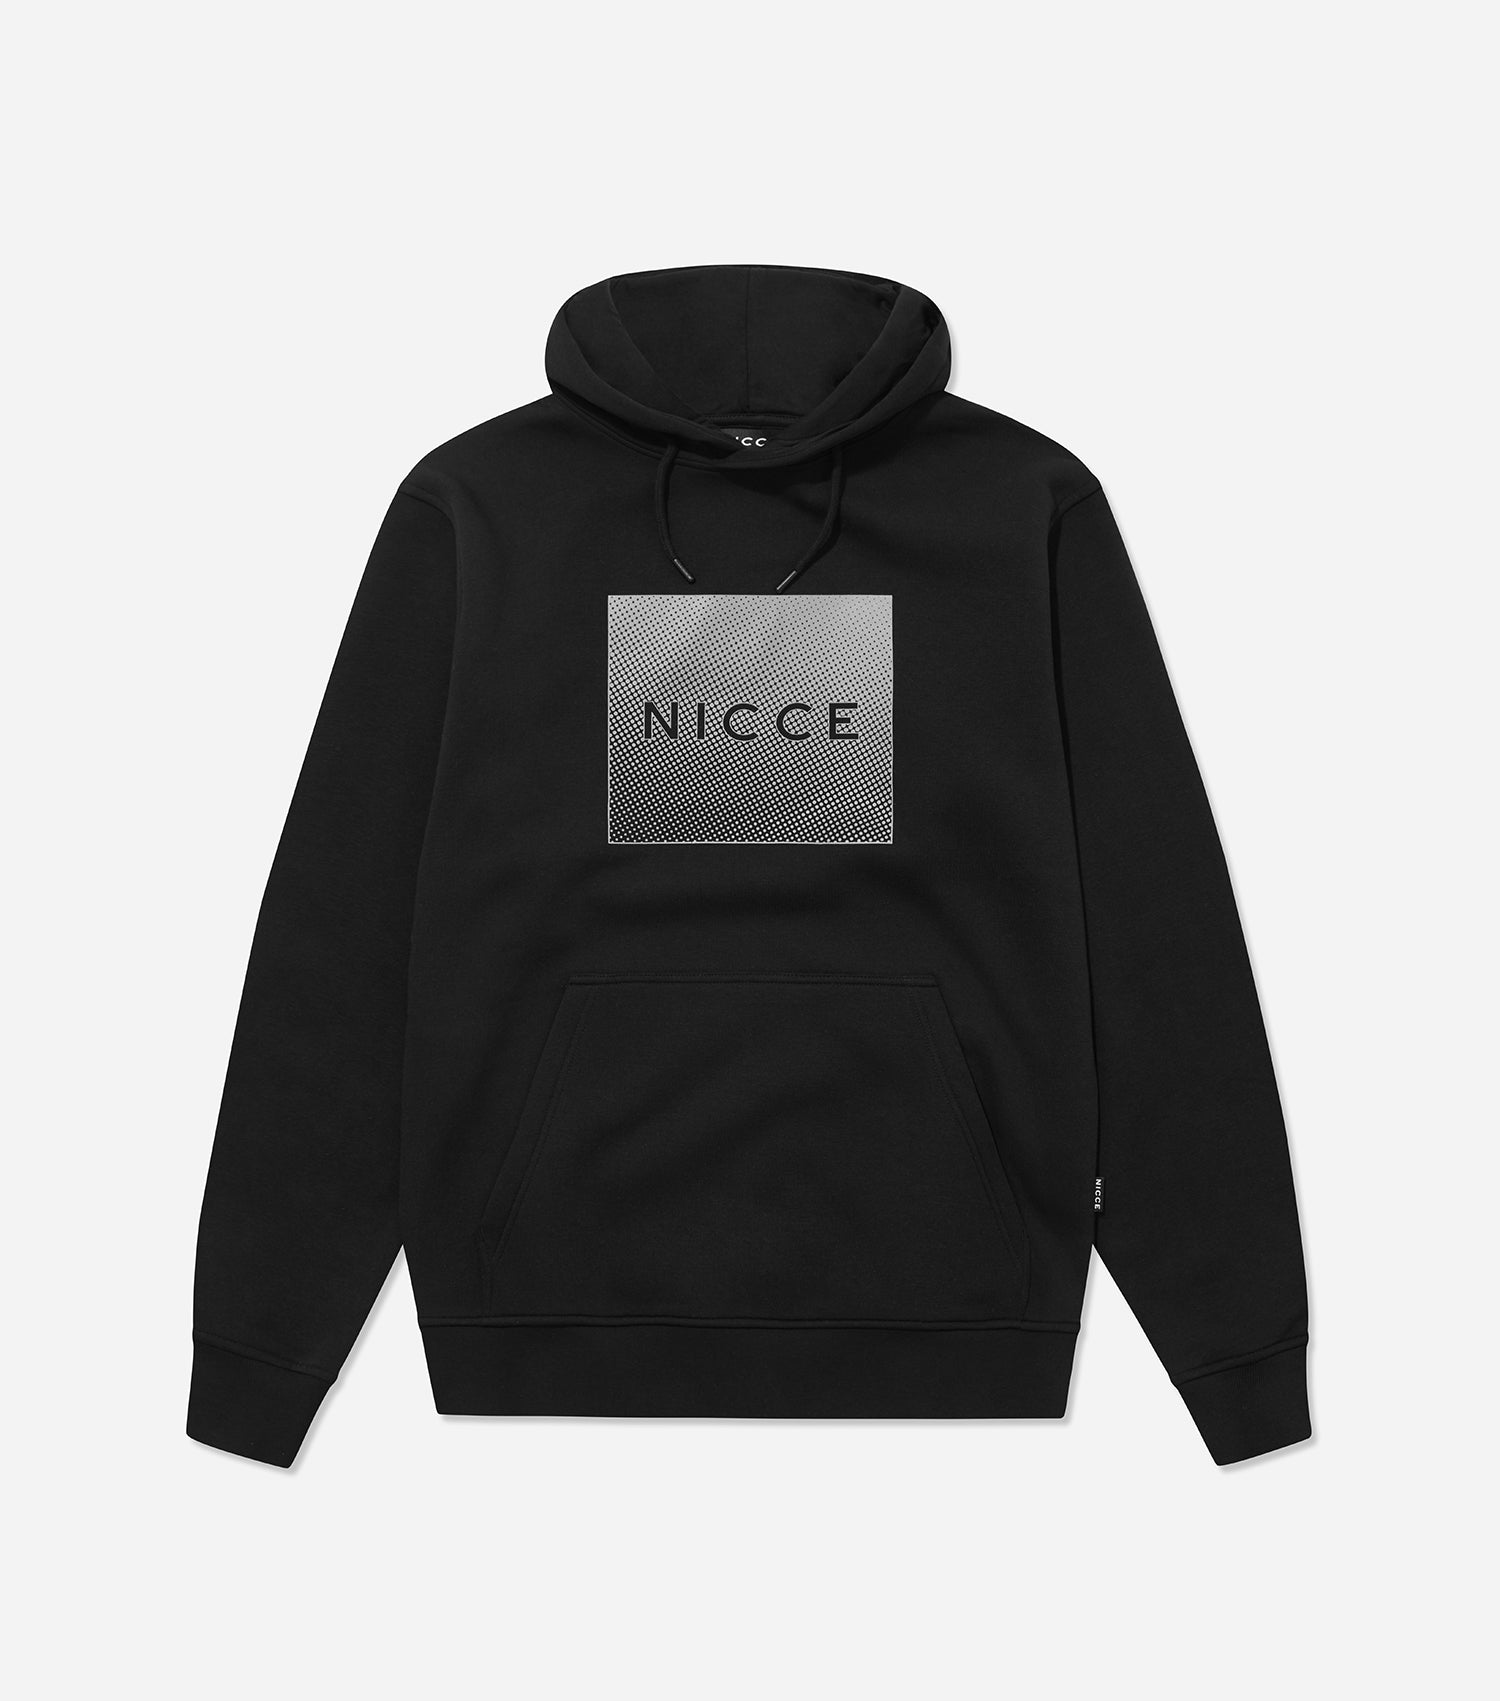 NICCE Mens Rhombus Hood | Black, Hoodies